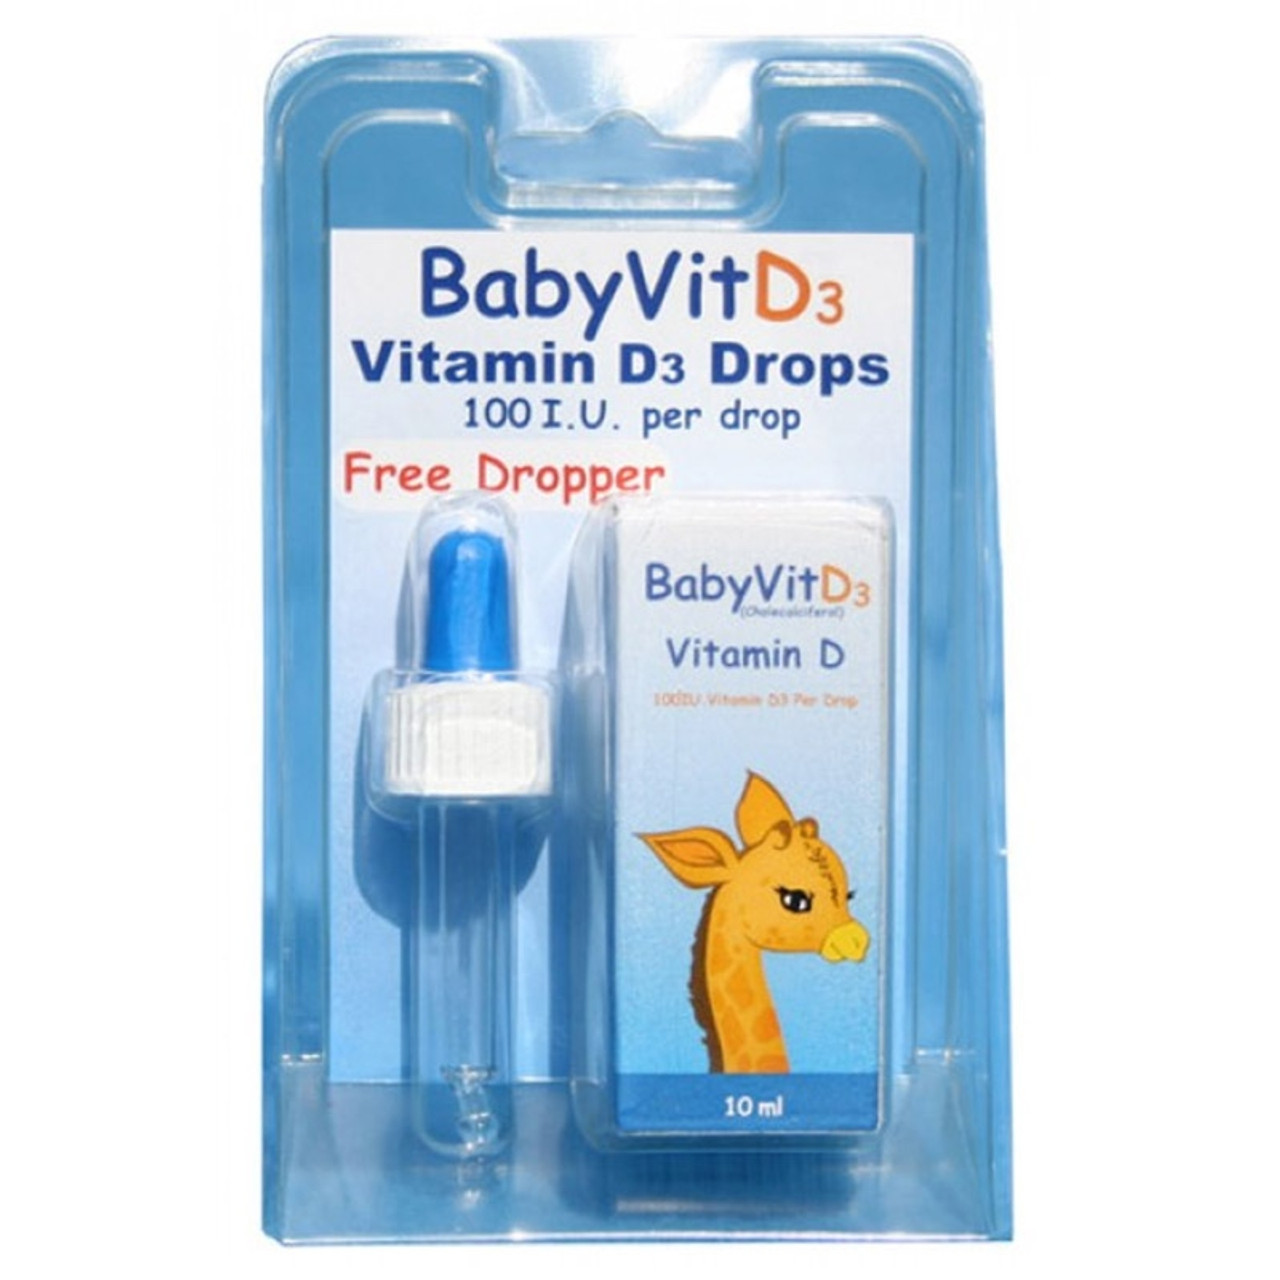 6fe17f8f6129 Buy Baby Vit D (Vitamin D Drops) Next Day Delivery